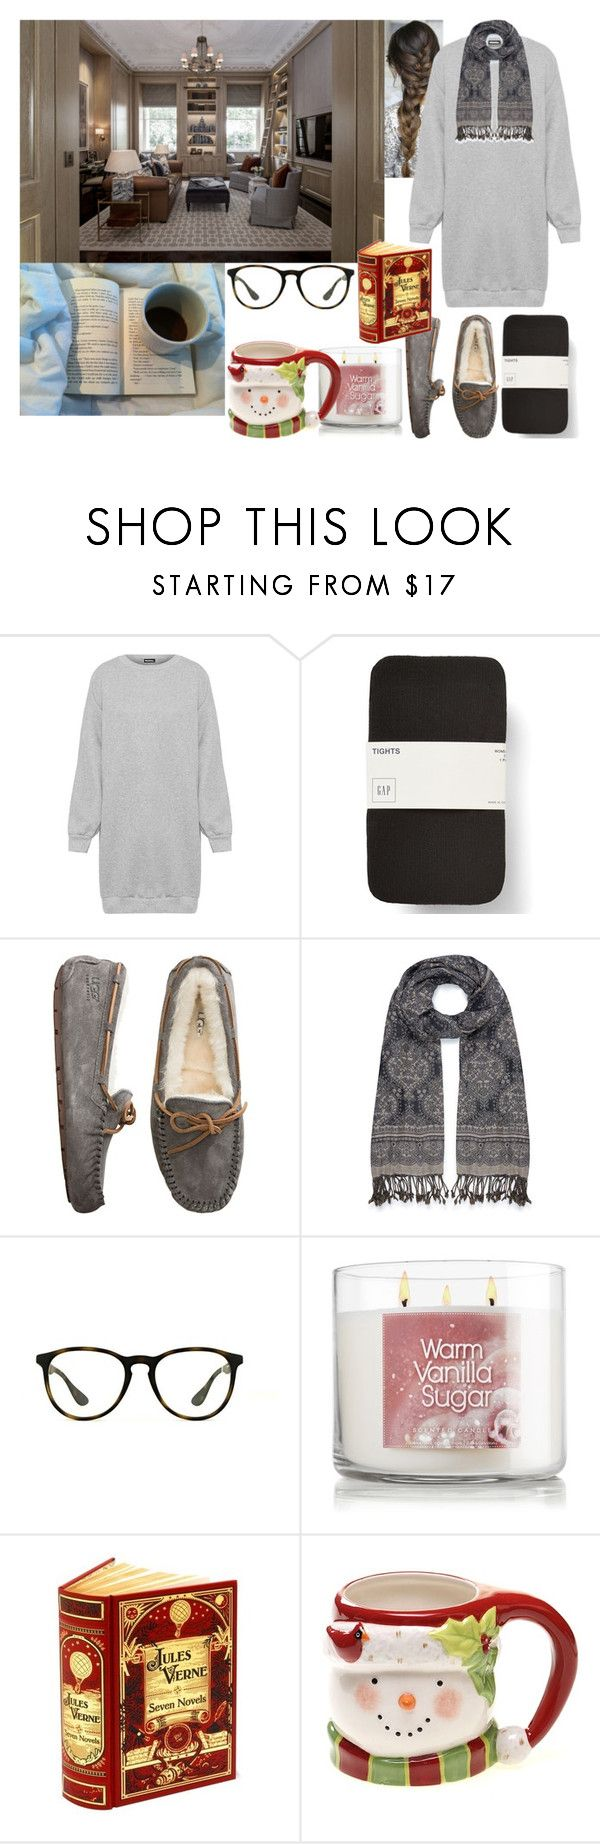 """Spending the rainy morning reading inside"" by catherineofwales ❤ liked on Polyvore featuring Sugoi, WearAll, UGG Australia, Accessorize, Ray-Ban, CO, 7 For All Mankind and Certified International"